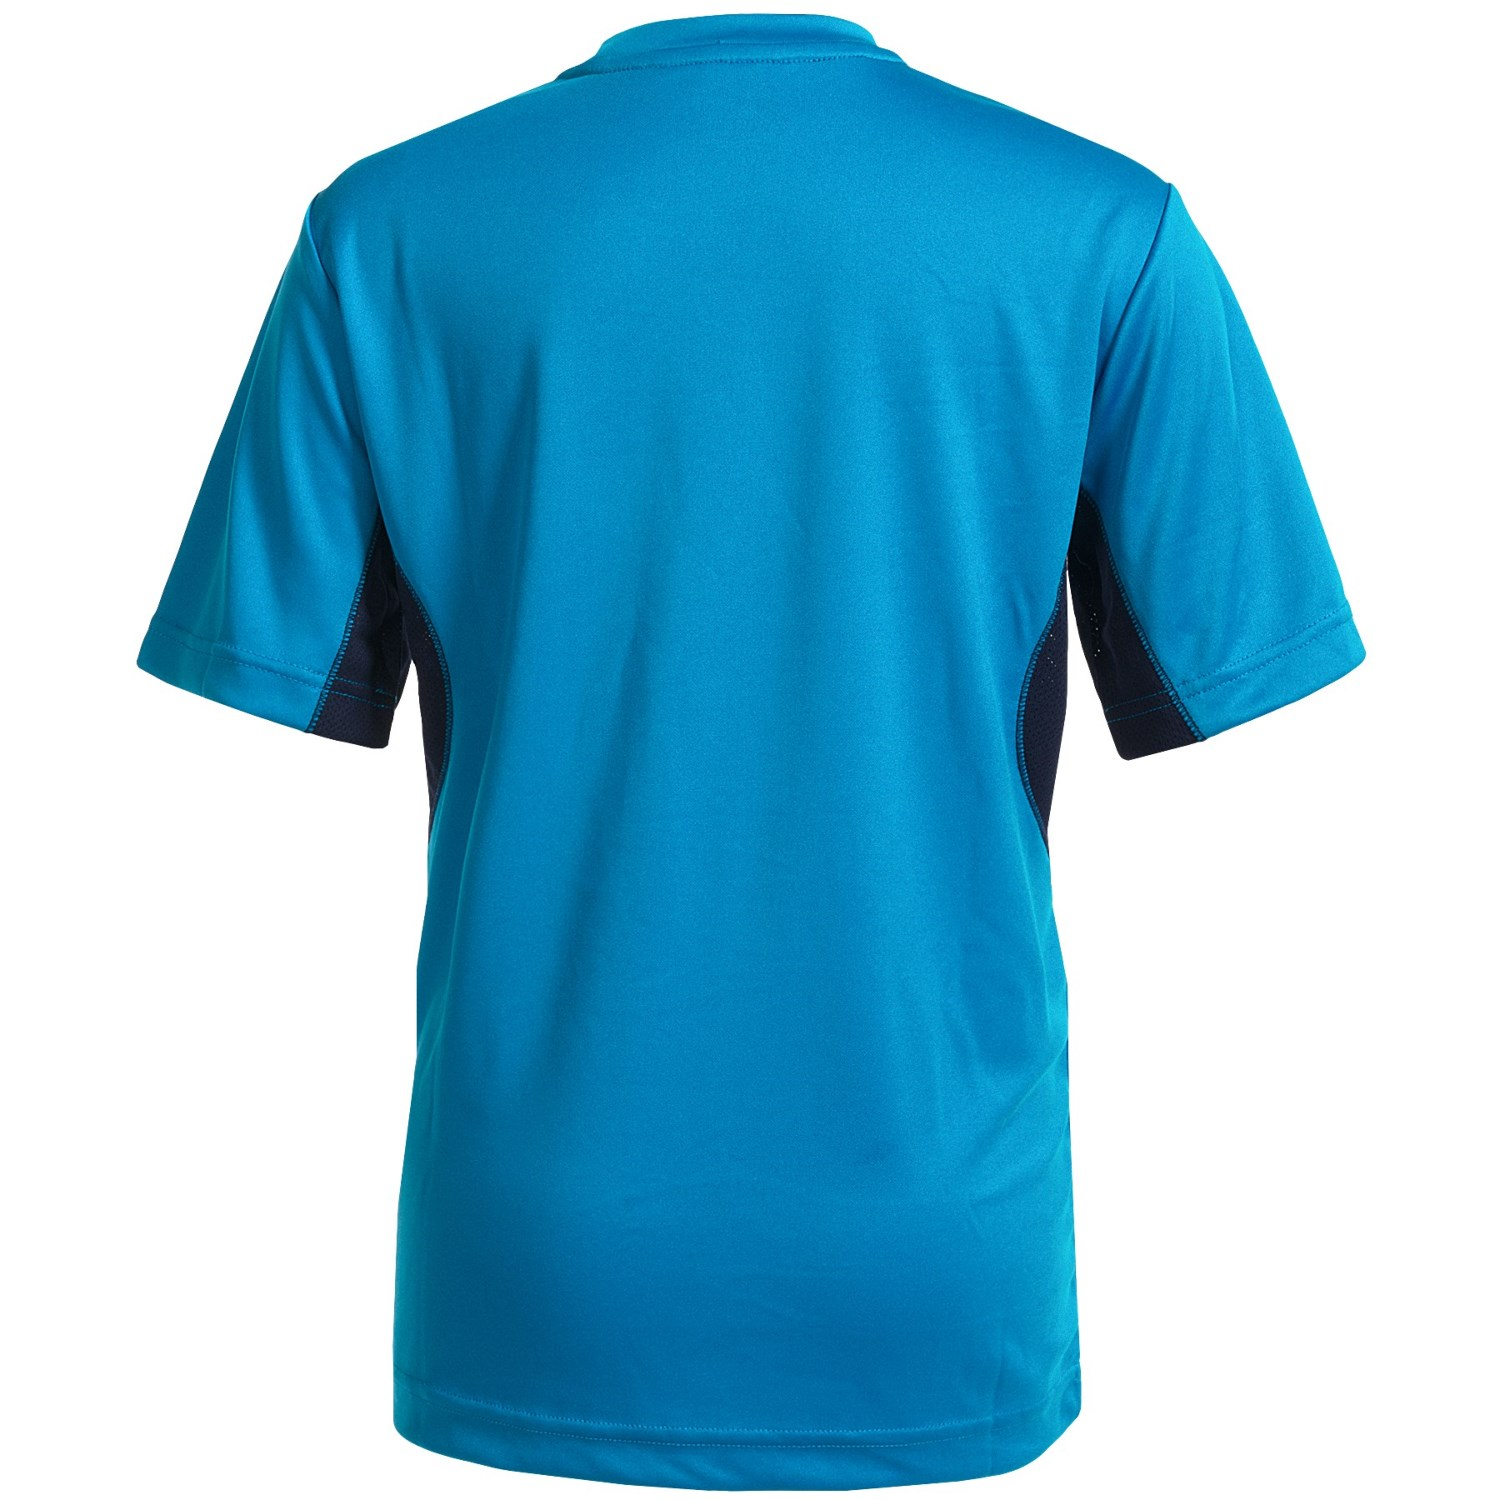 Avia high performance t shirt for little and big boys for High crew neck t shirts